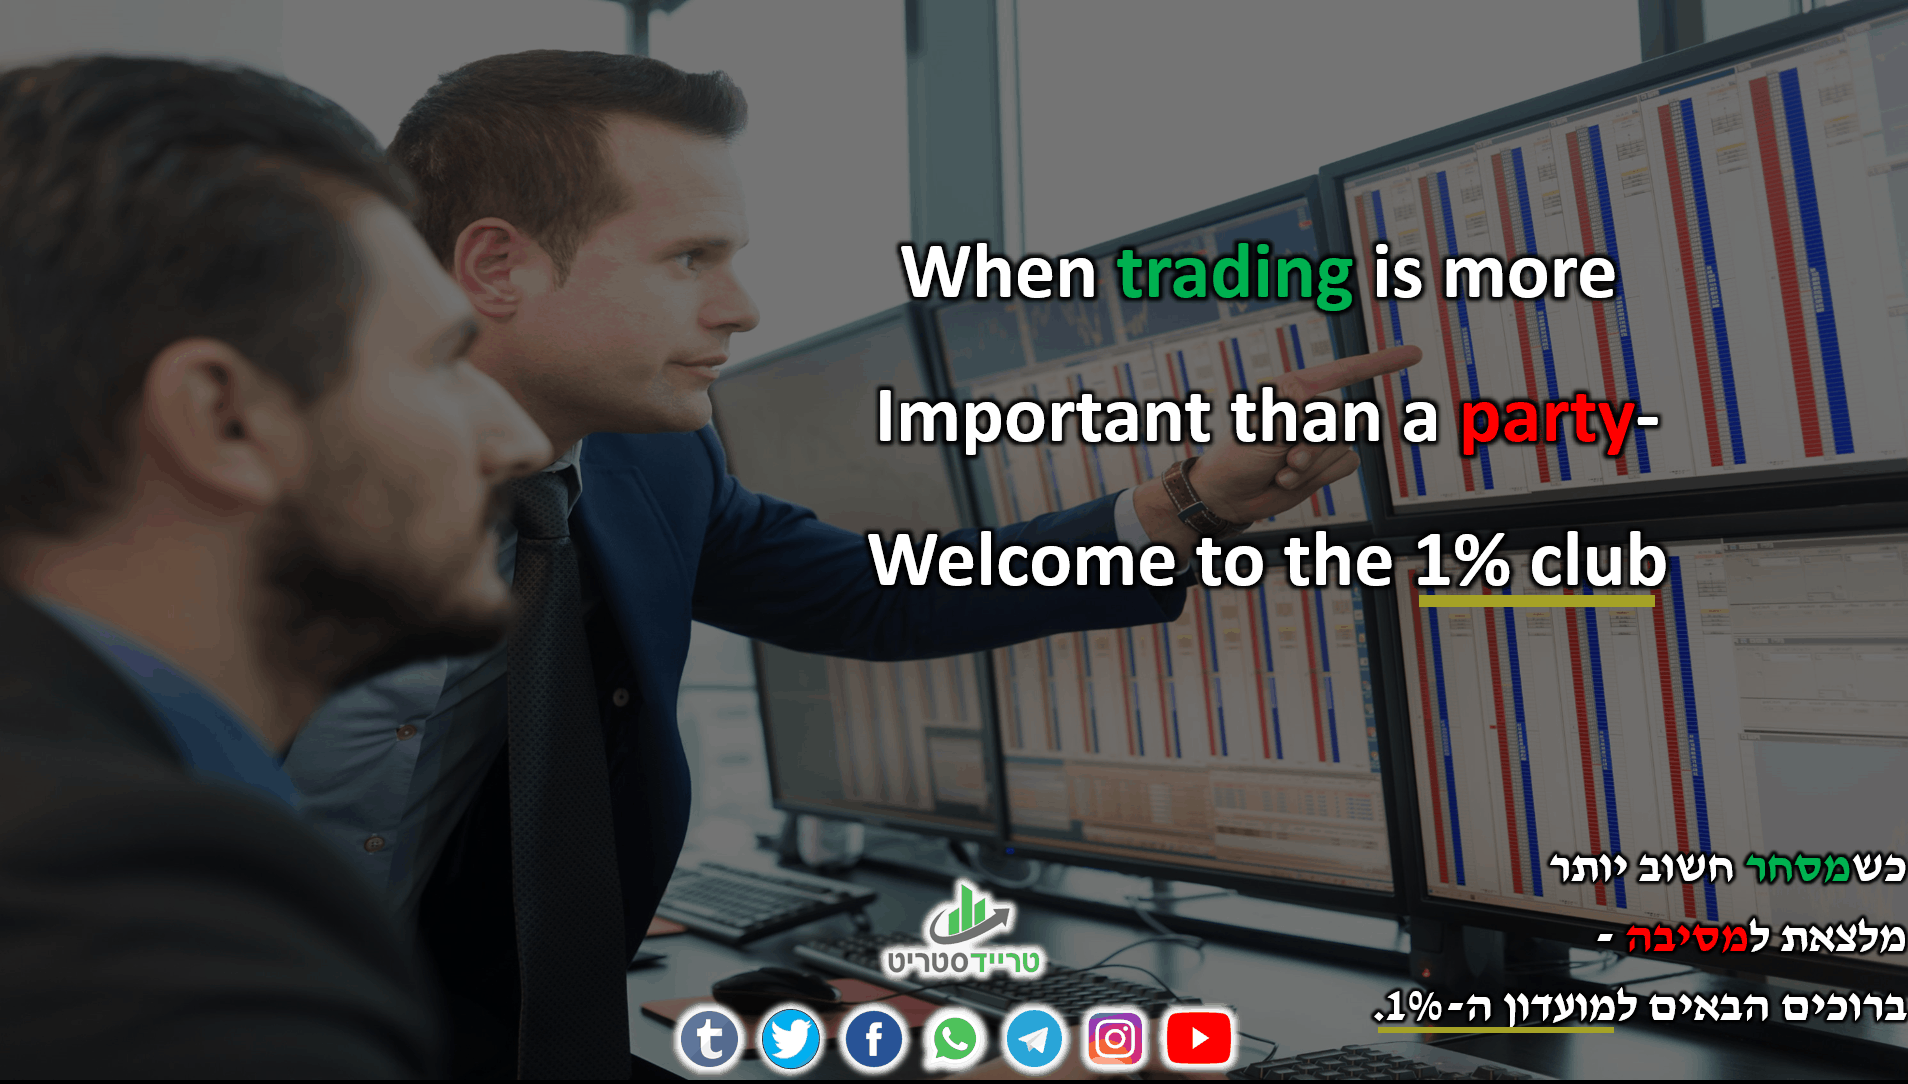 When trading is more Important than a party-